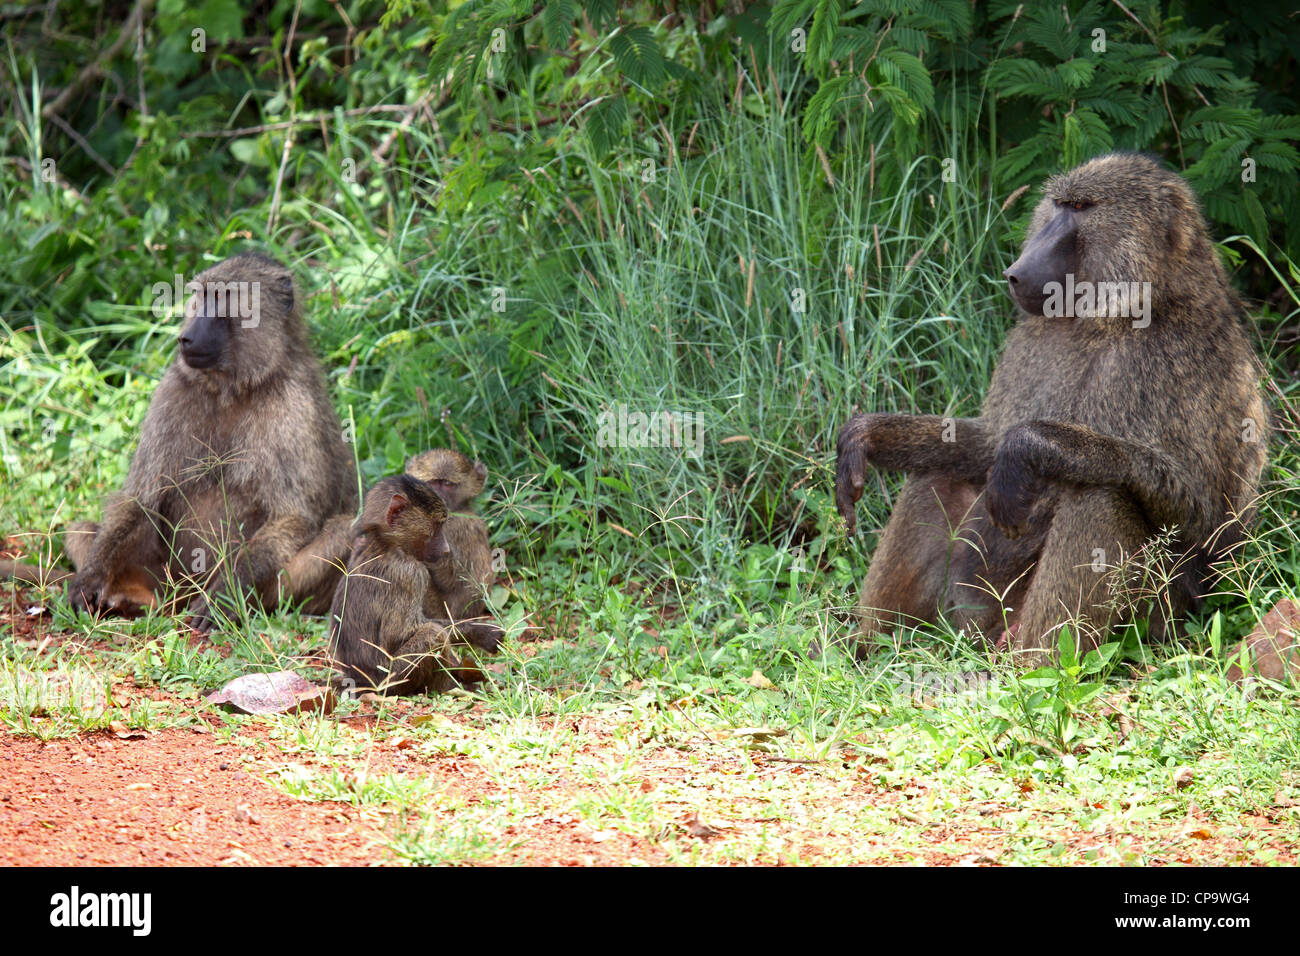 A family of olive baboons (Papio anubis) in Akagera National Park, Rwanda. Stock Photo